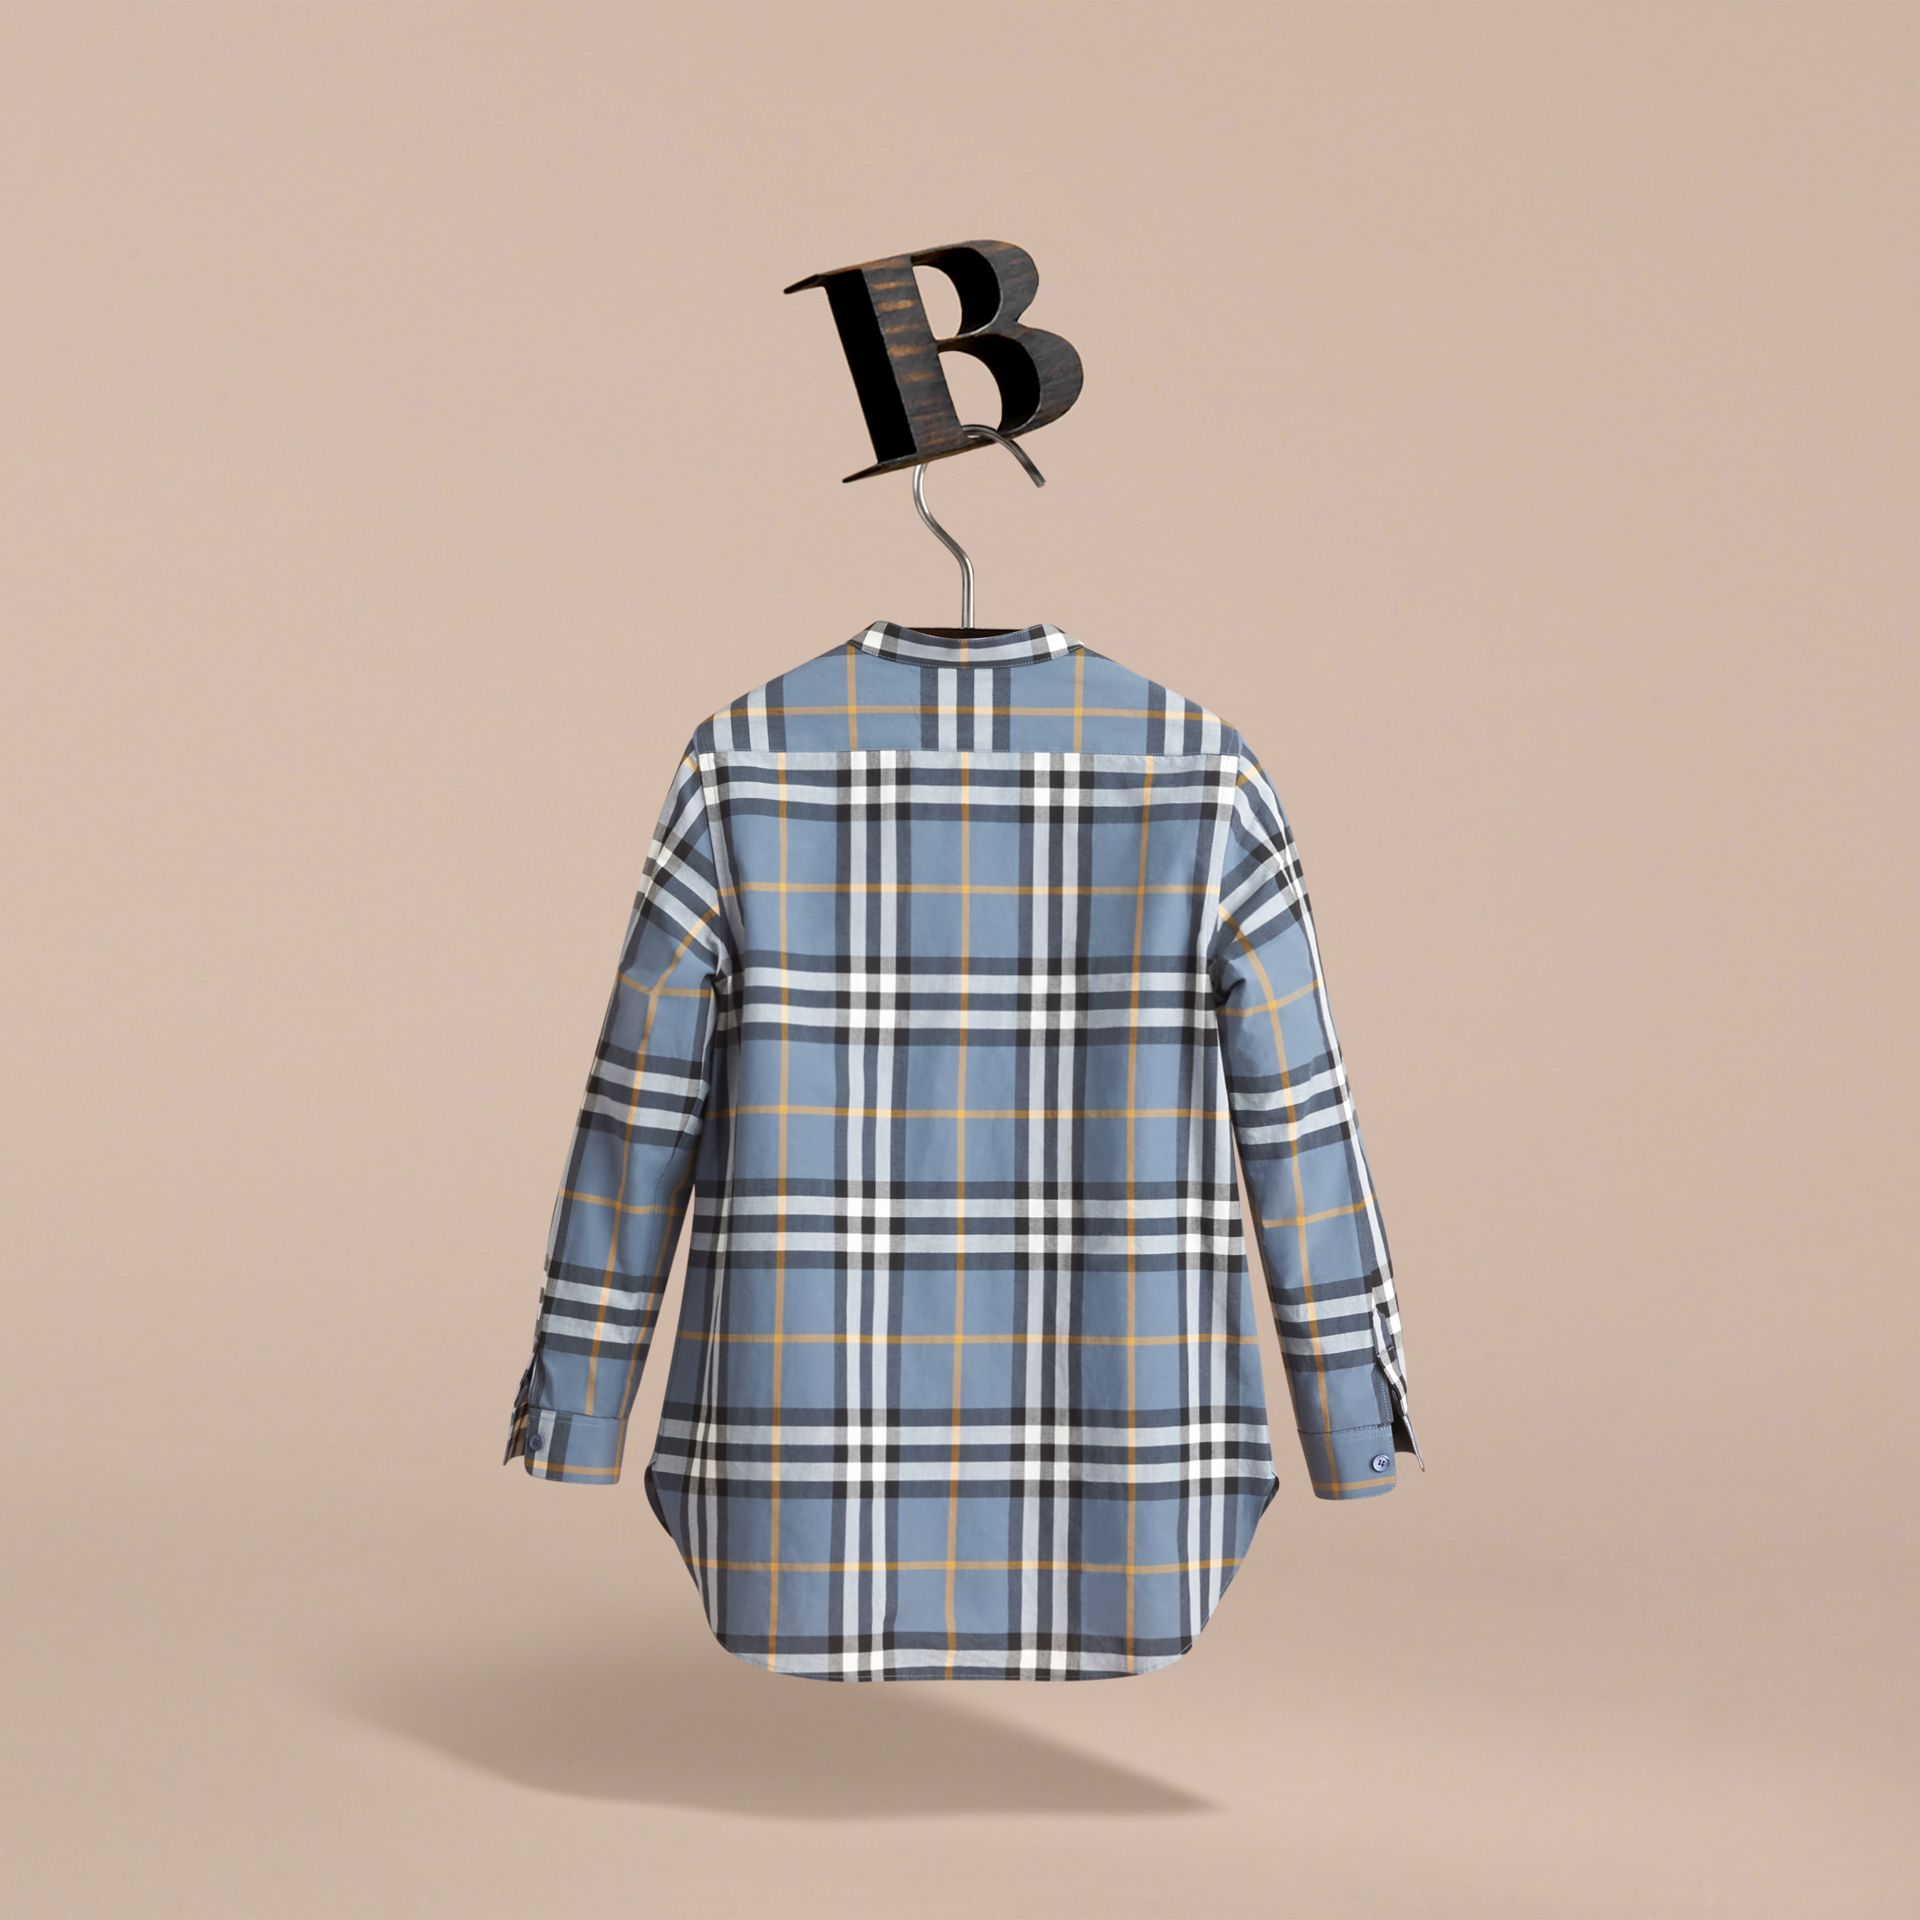 Unisex Lace Appliqué Check Cotton Shirt in Pewter Blue | Burberry - gallery image 3